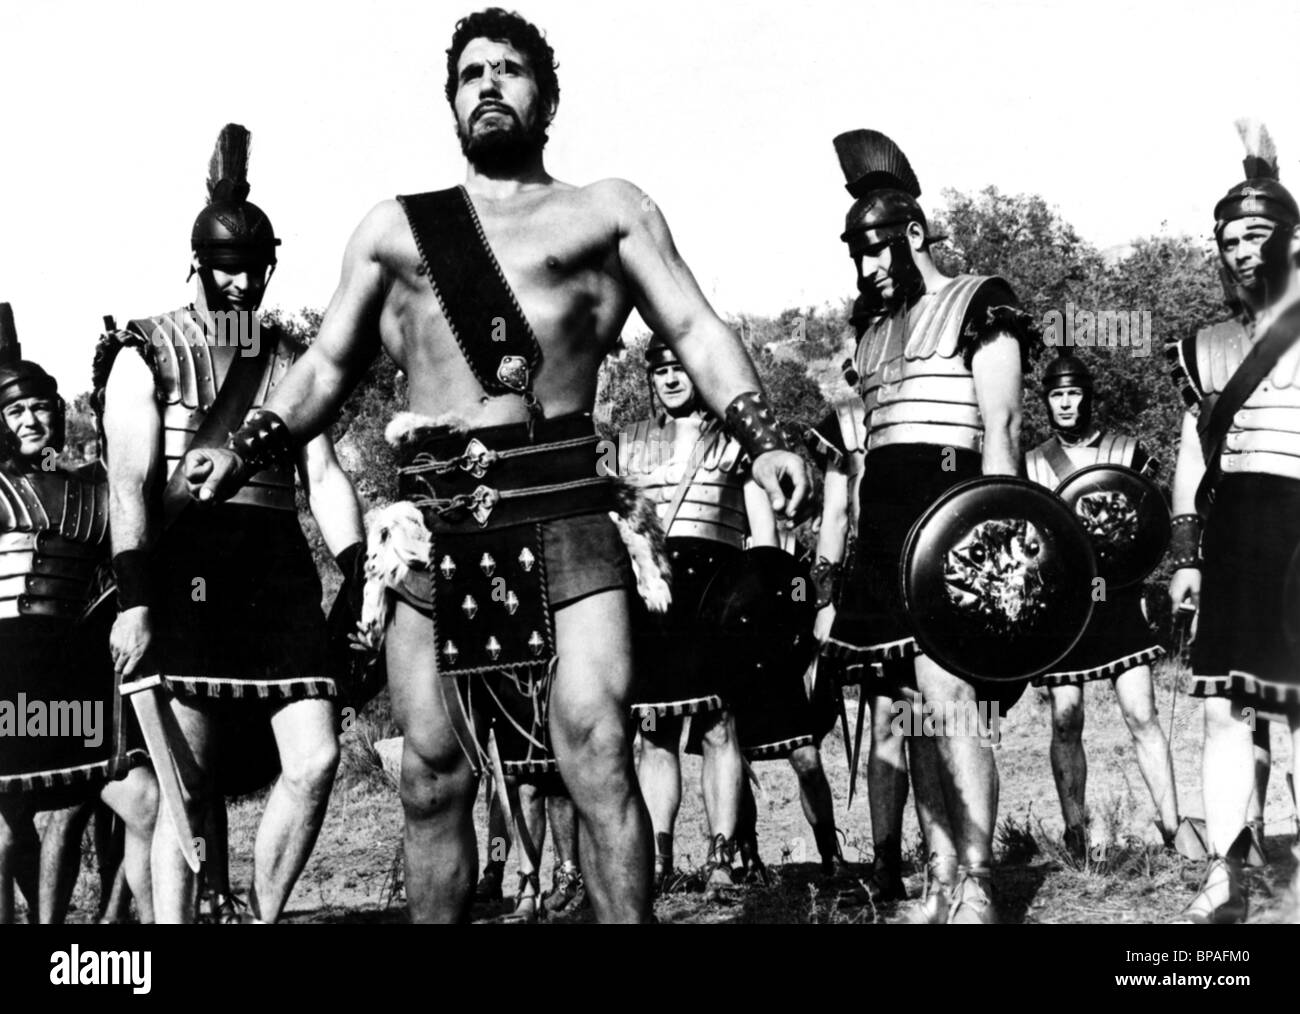 Swimsuit Veronica Sanchez nude (45 photo) Pussy, Instagram, braless